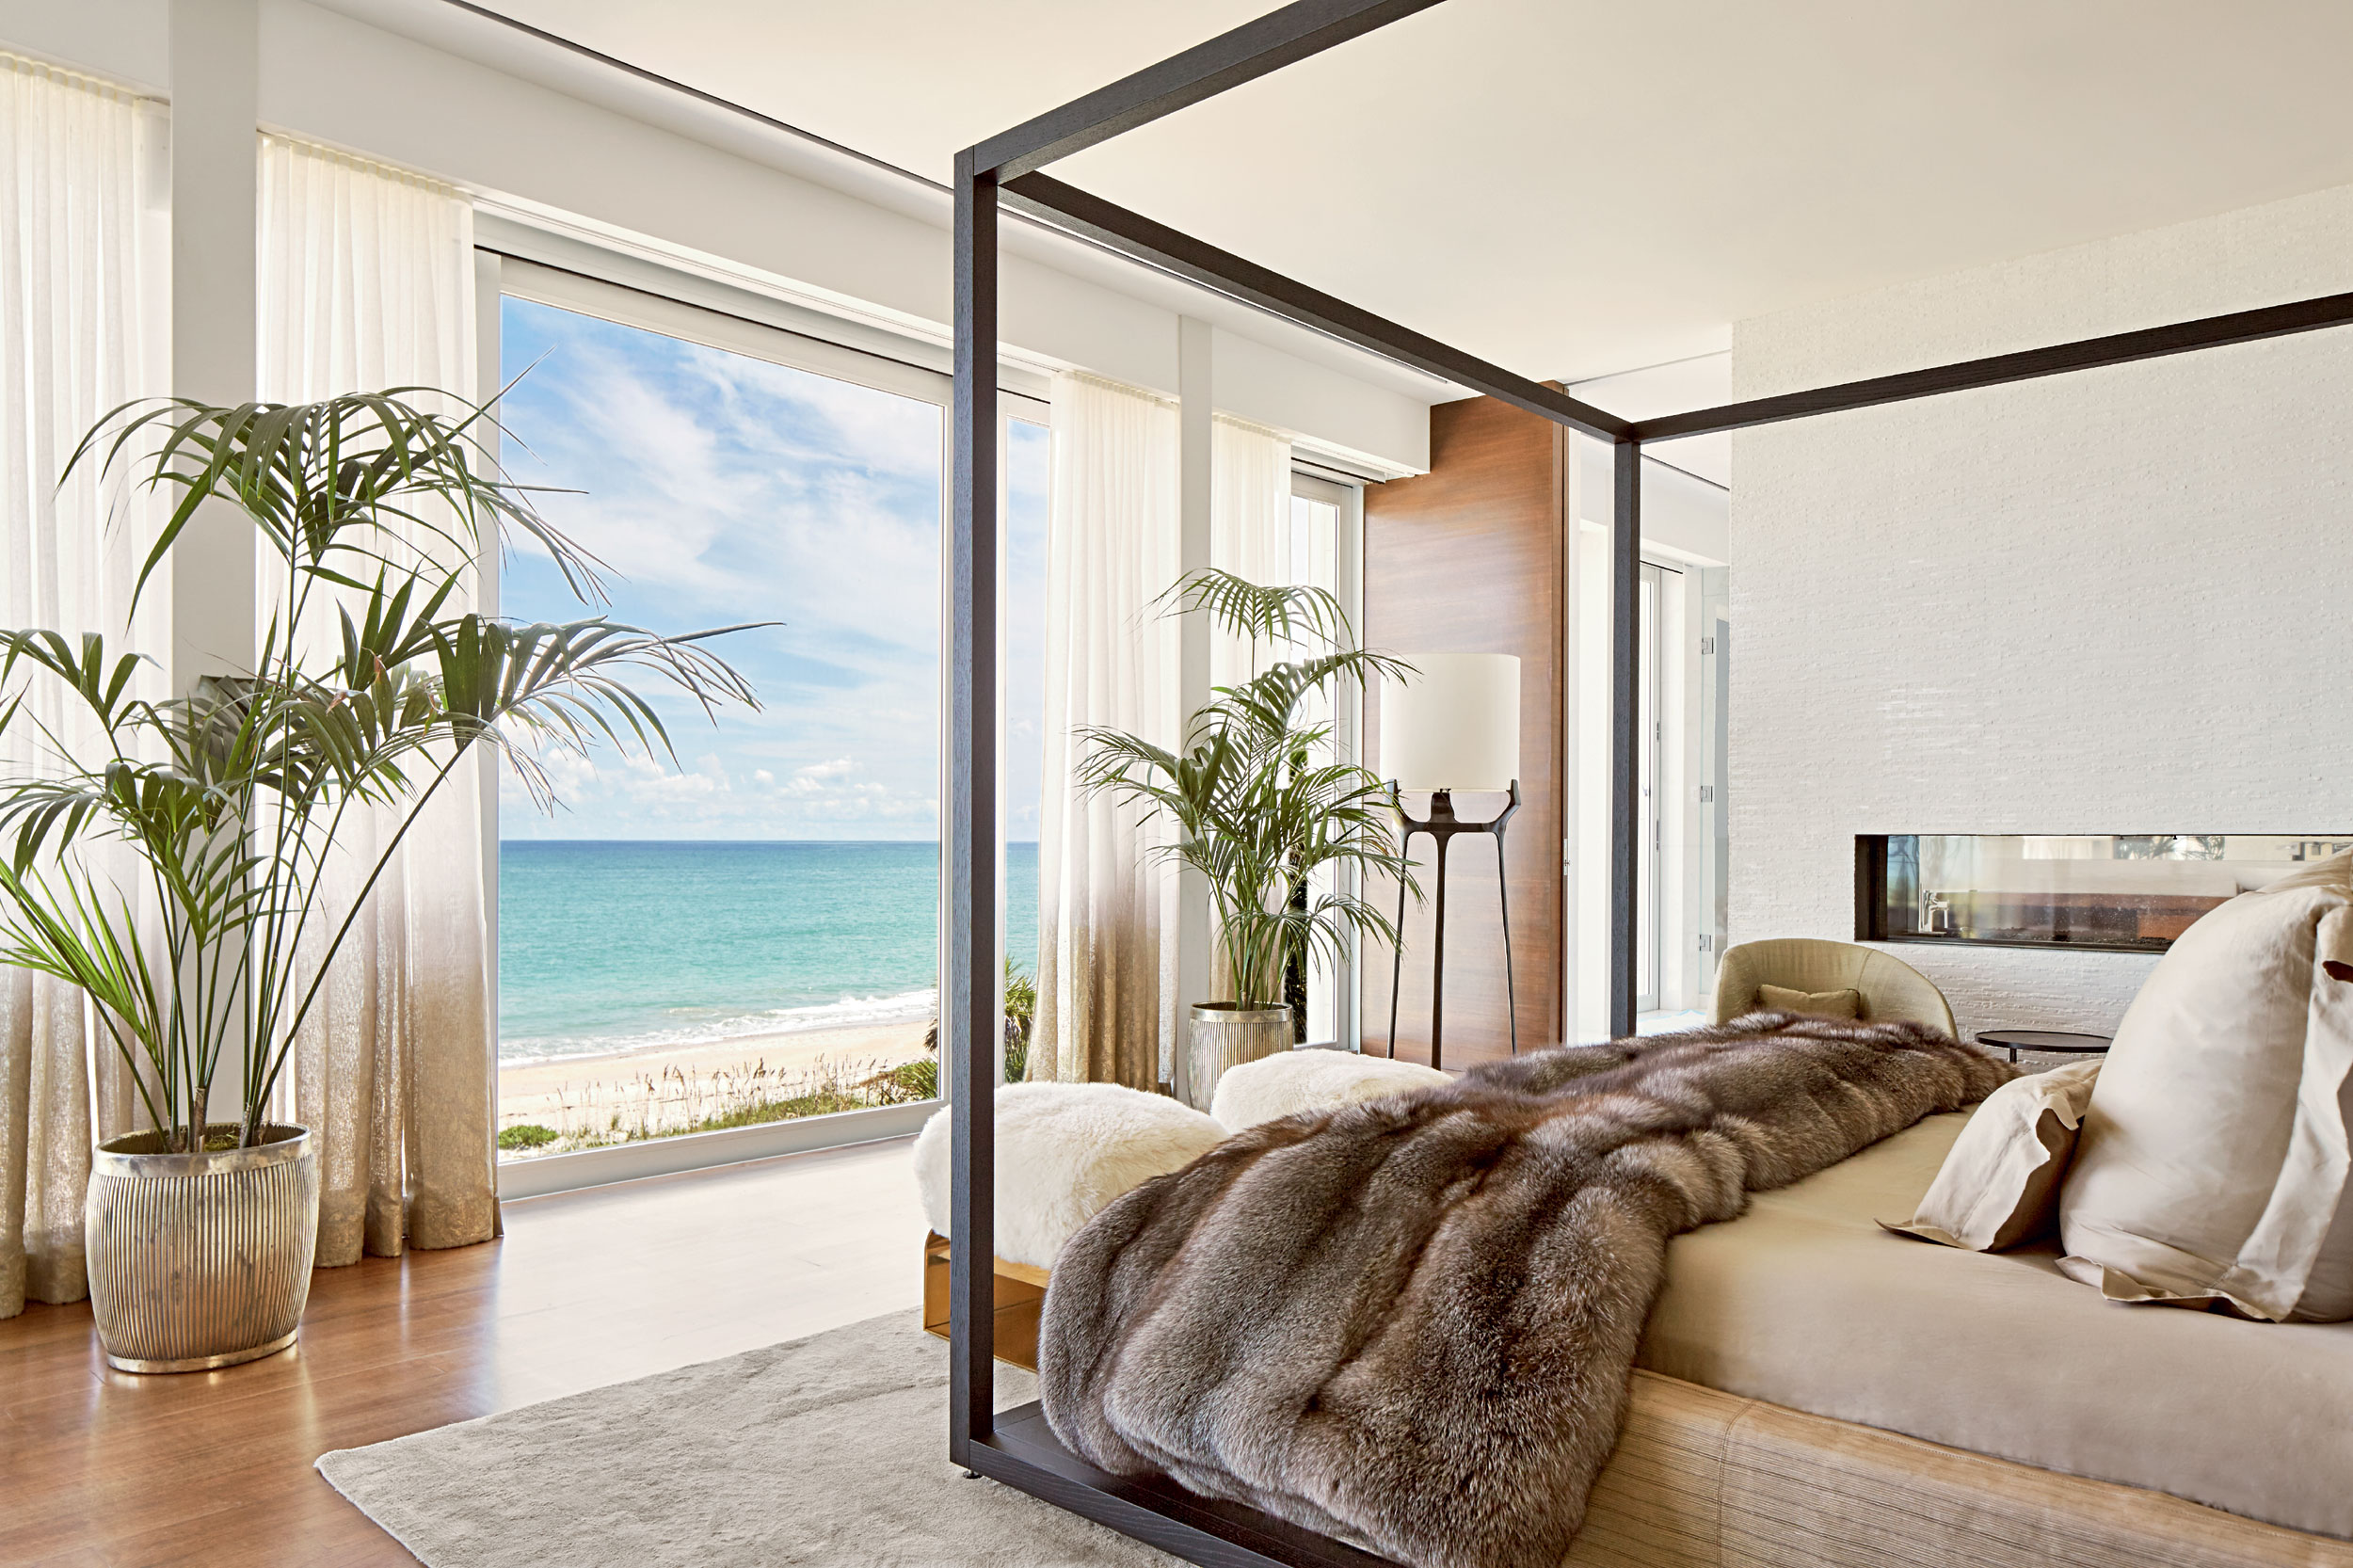 Alongside a lavish master suite and three additional bedroom suites, the estate—set on 1.7 acres with a 200-foot stretch of beach frontage—has a three-bedroom guesthouse, two pools, a beachside tiki hut, and an array of terraces.